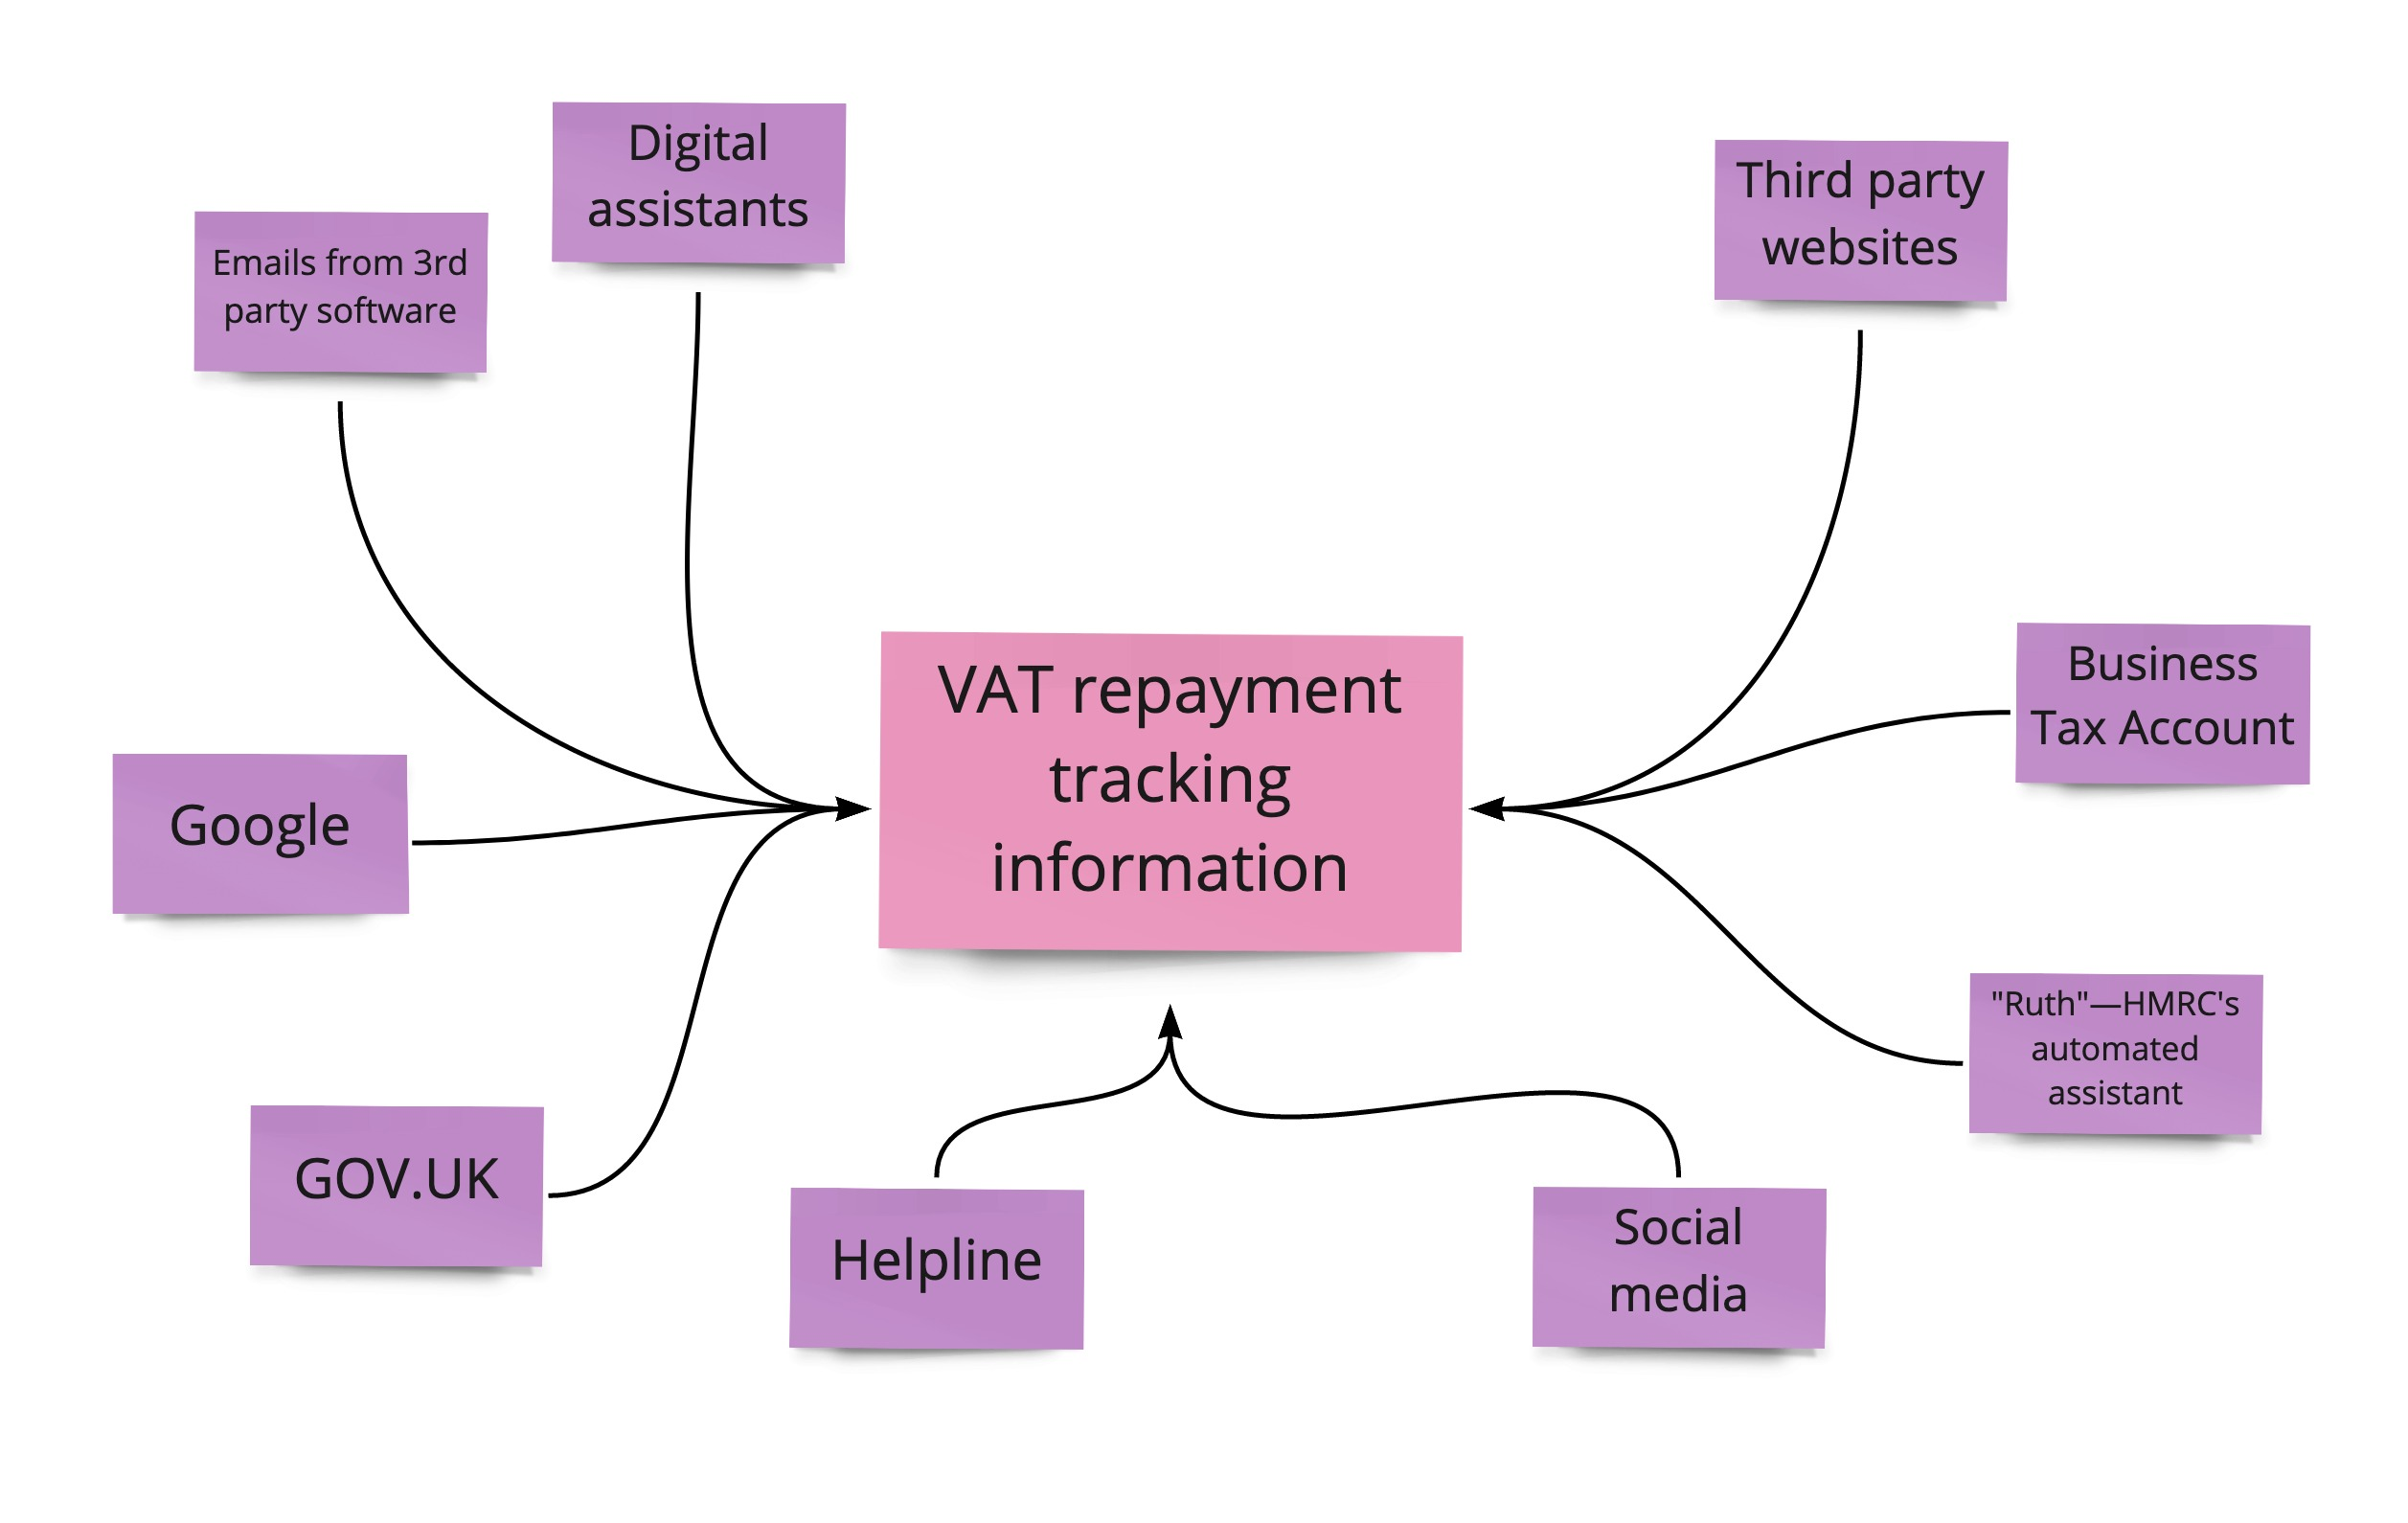 Typically there are multiple ways that users access government services; tracking a VAT repayment was no exception.